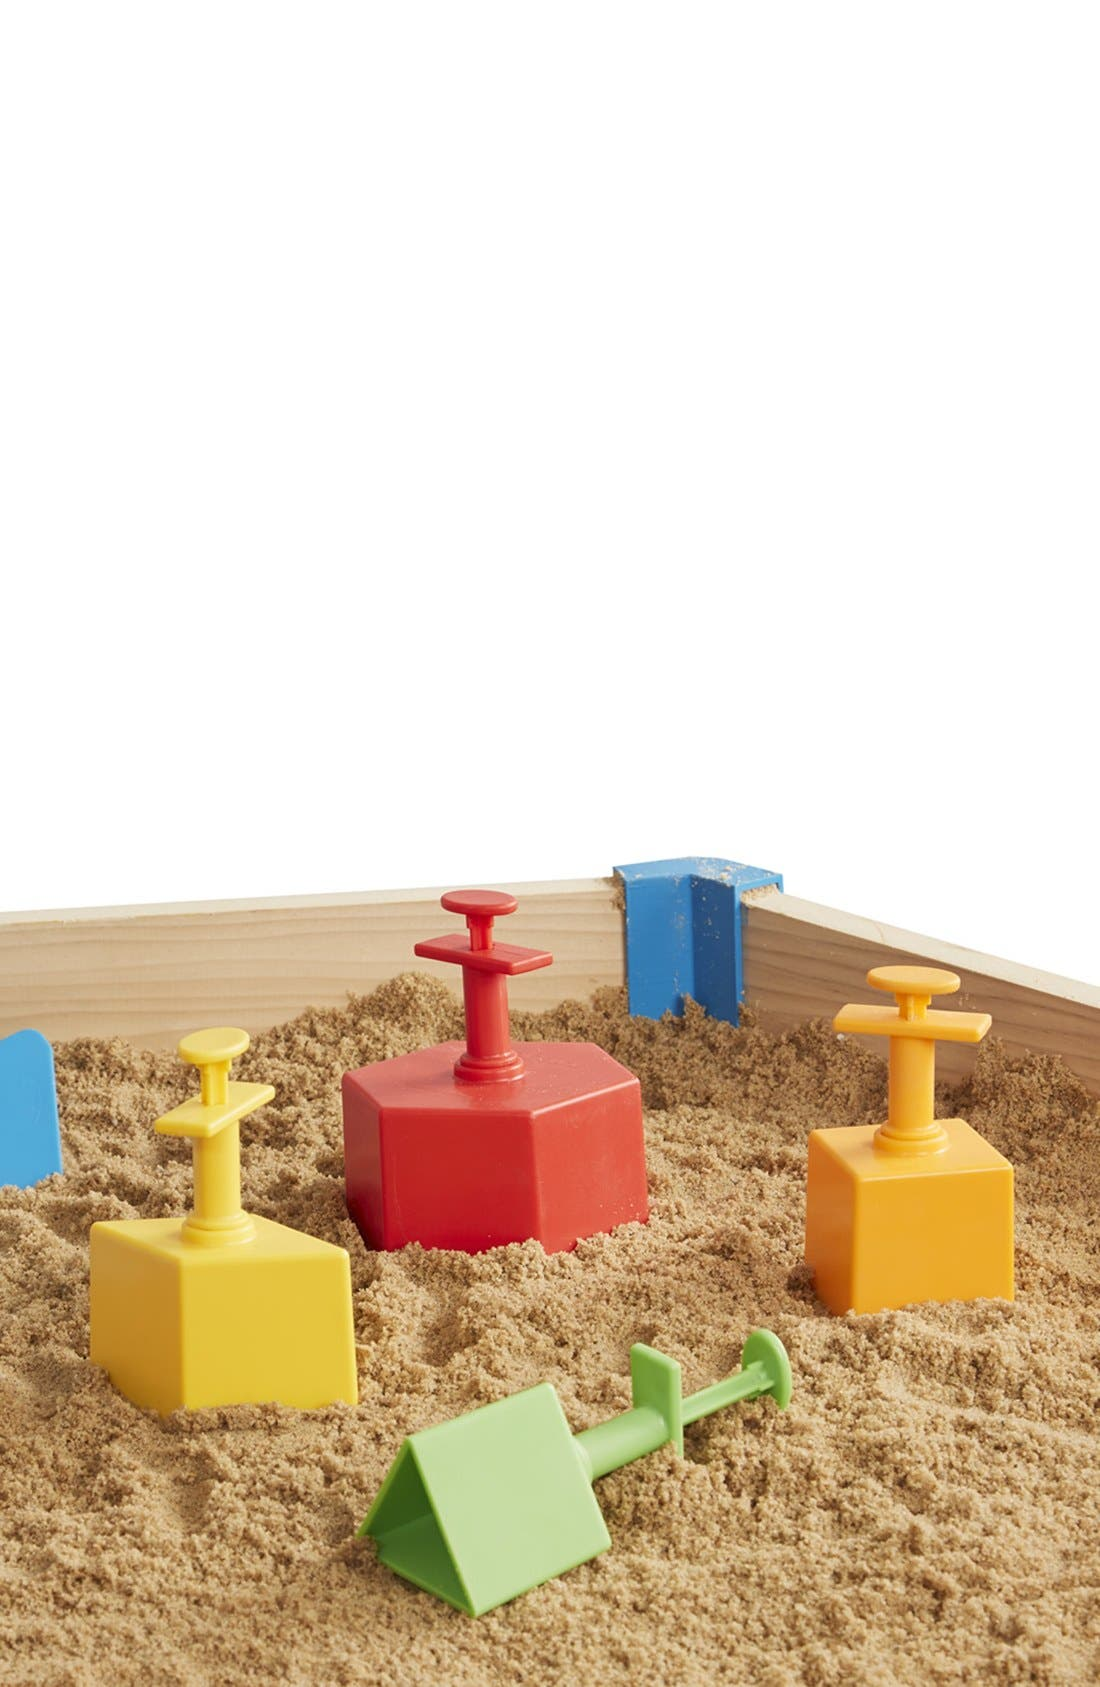 MELISSA & DOUG, 'SandBlox' Sand Box Set, Main thumbnail 1, color, MULTI